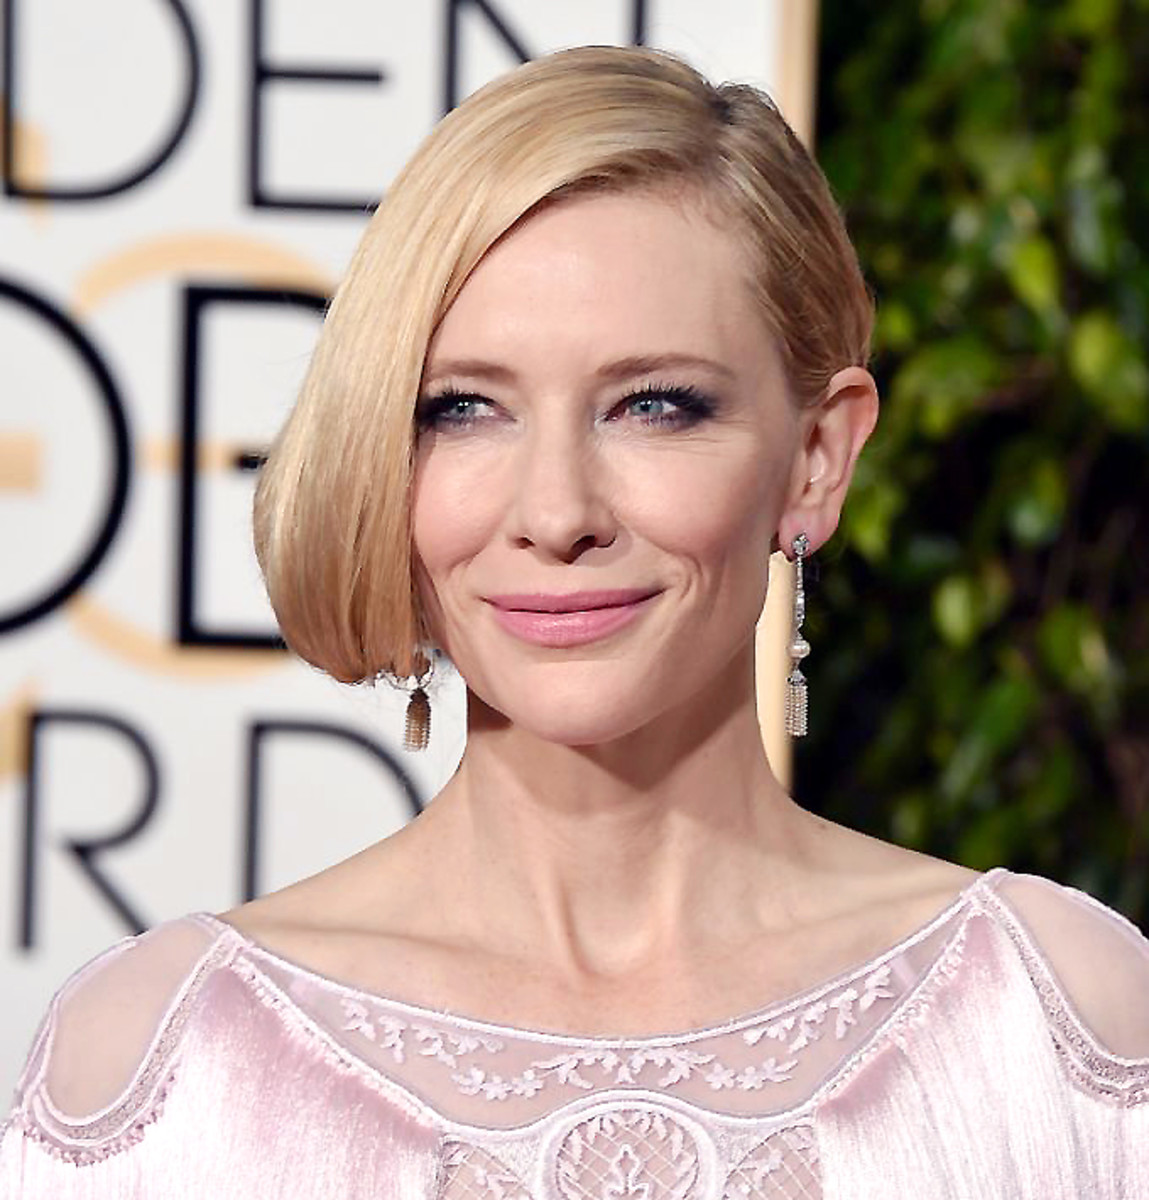 Cate Blanchett in a shimmering fringed Givenchy gown at the 2016 Golden Globes